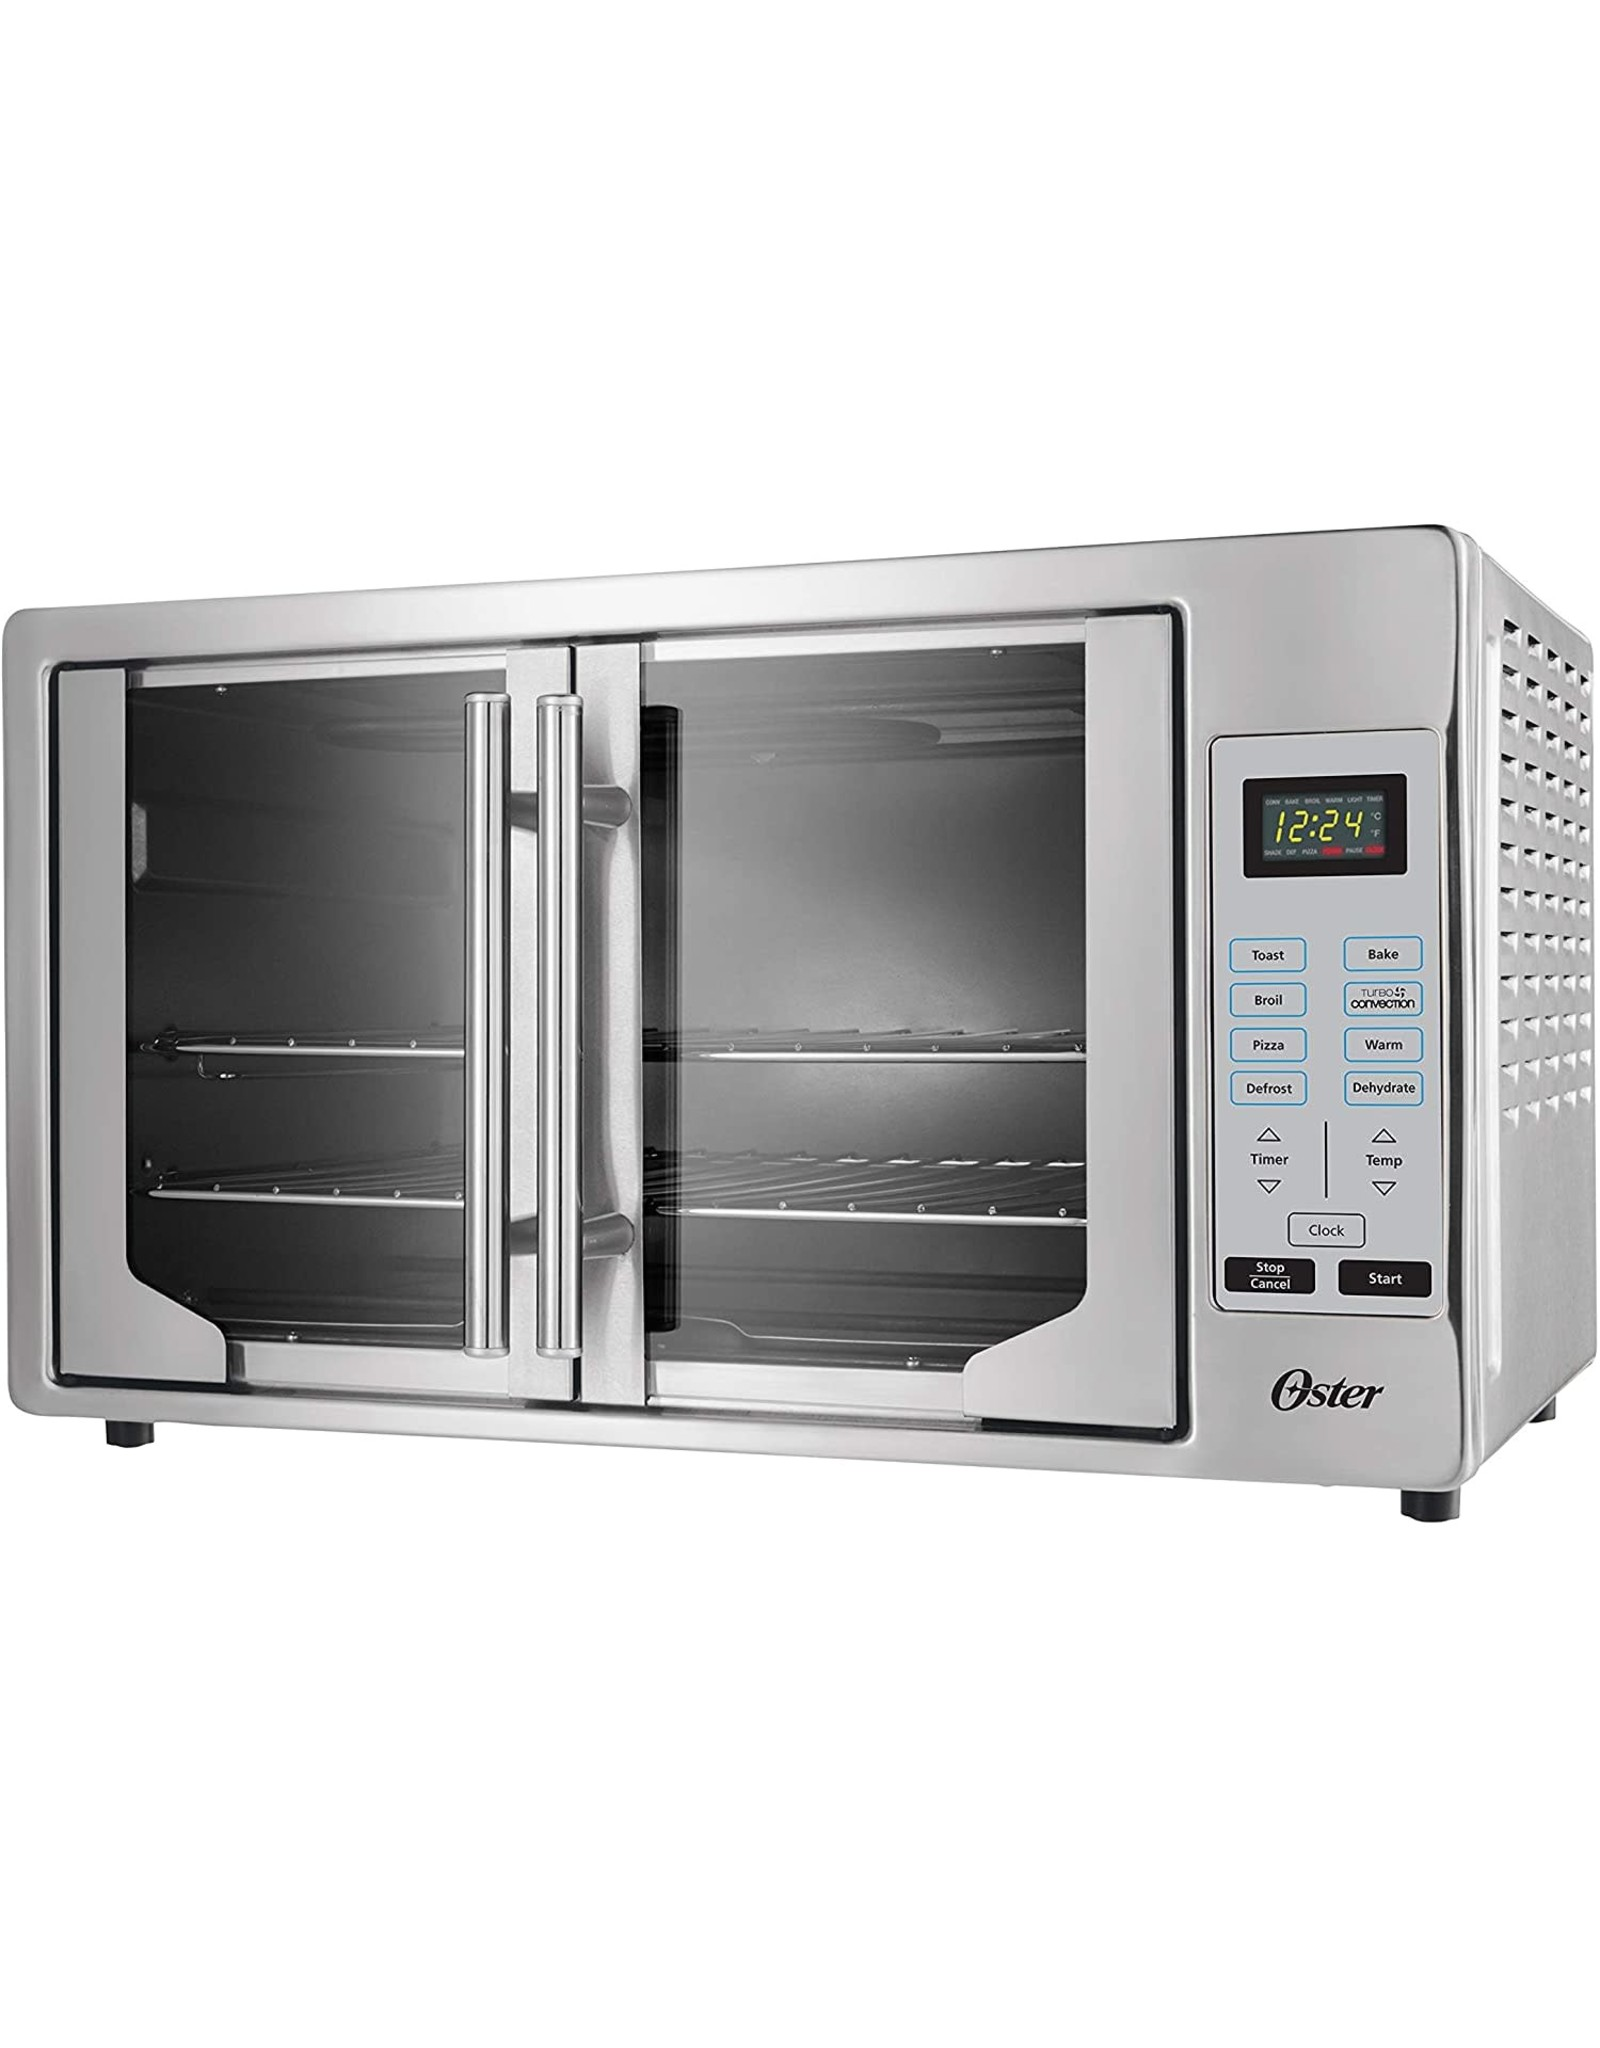 Oster Oster French Convection Countertop and Toaster Oven | Single Door Pull and Digital Controls | Stainless Steel, Extra Large